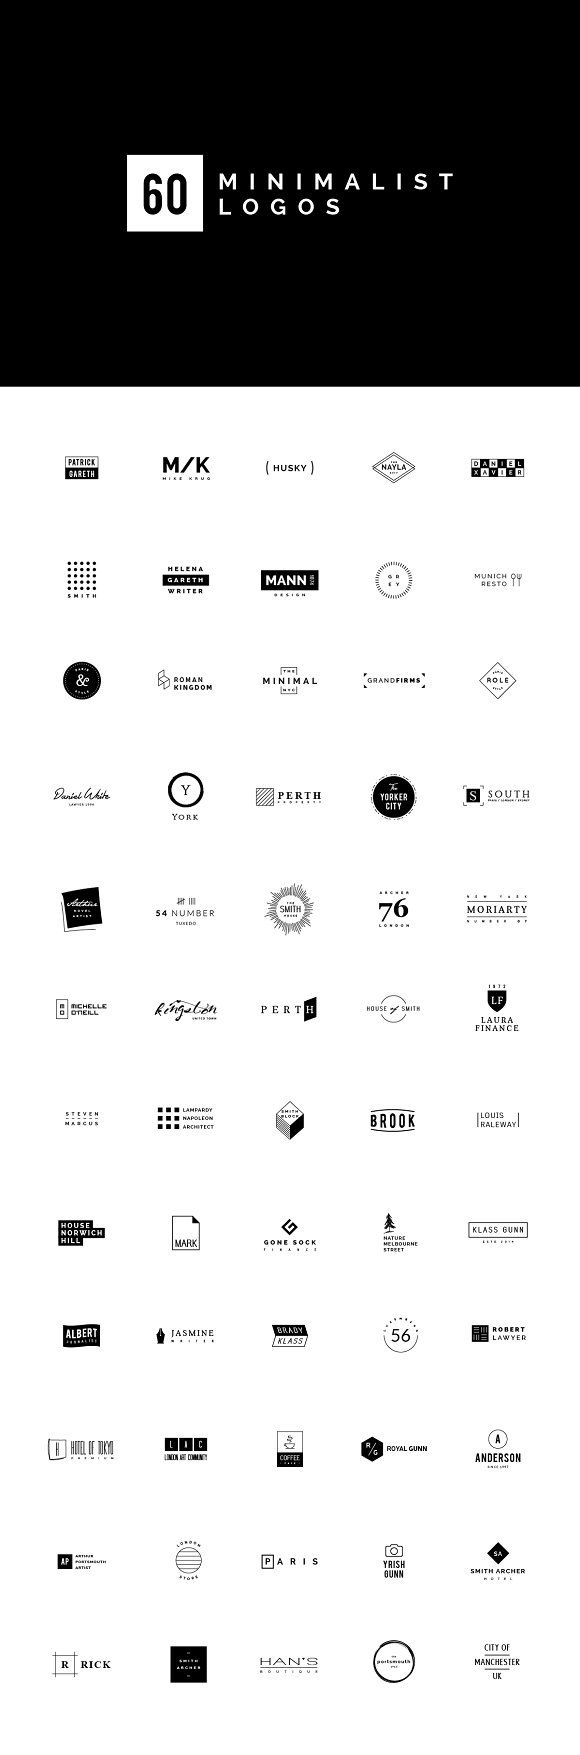 60 Minimalist Logos by vuuuds on @creativemarket